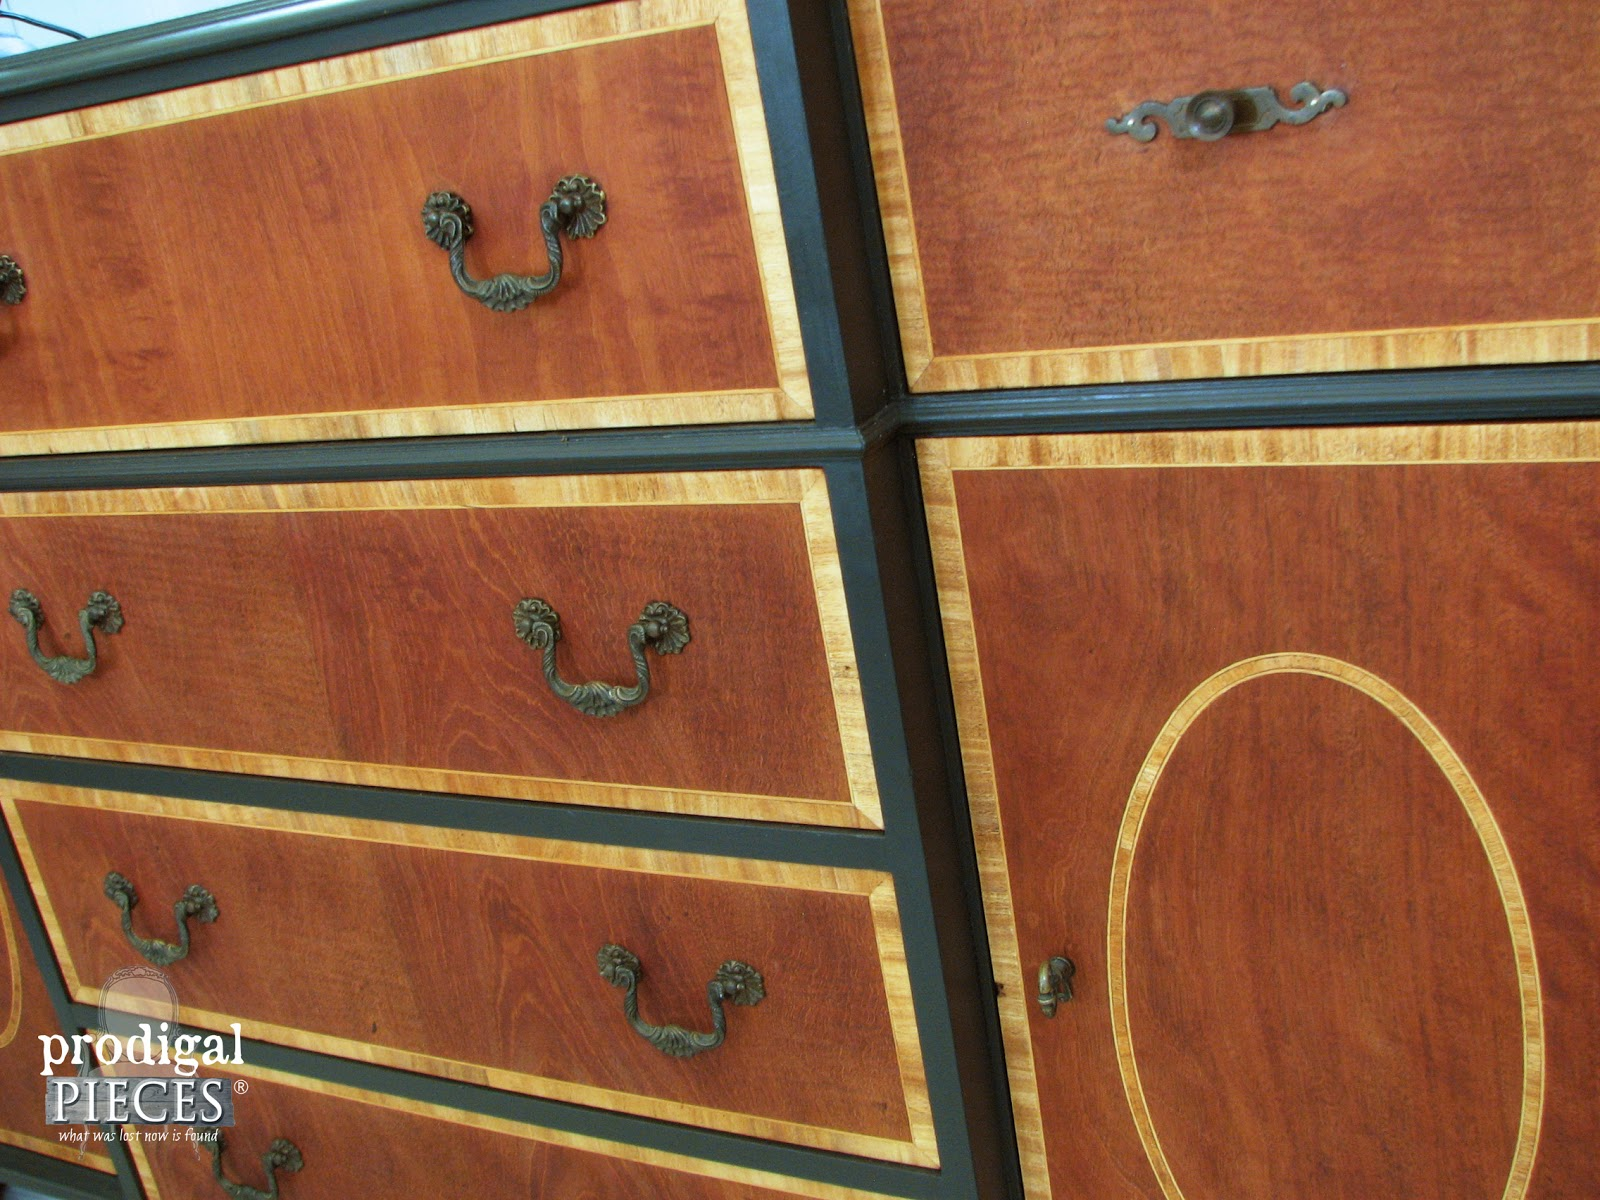 Front Face of Vintage Bureau | Prodigal Pieces | www.prodigalpieces.com